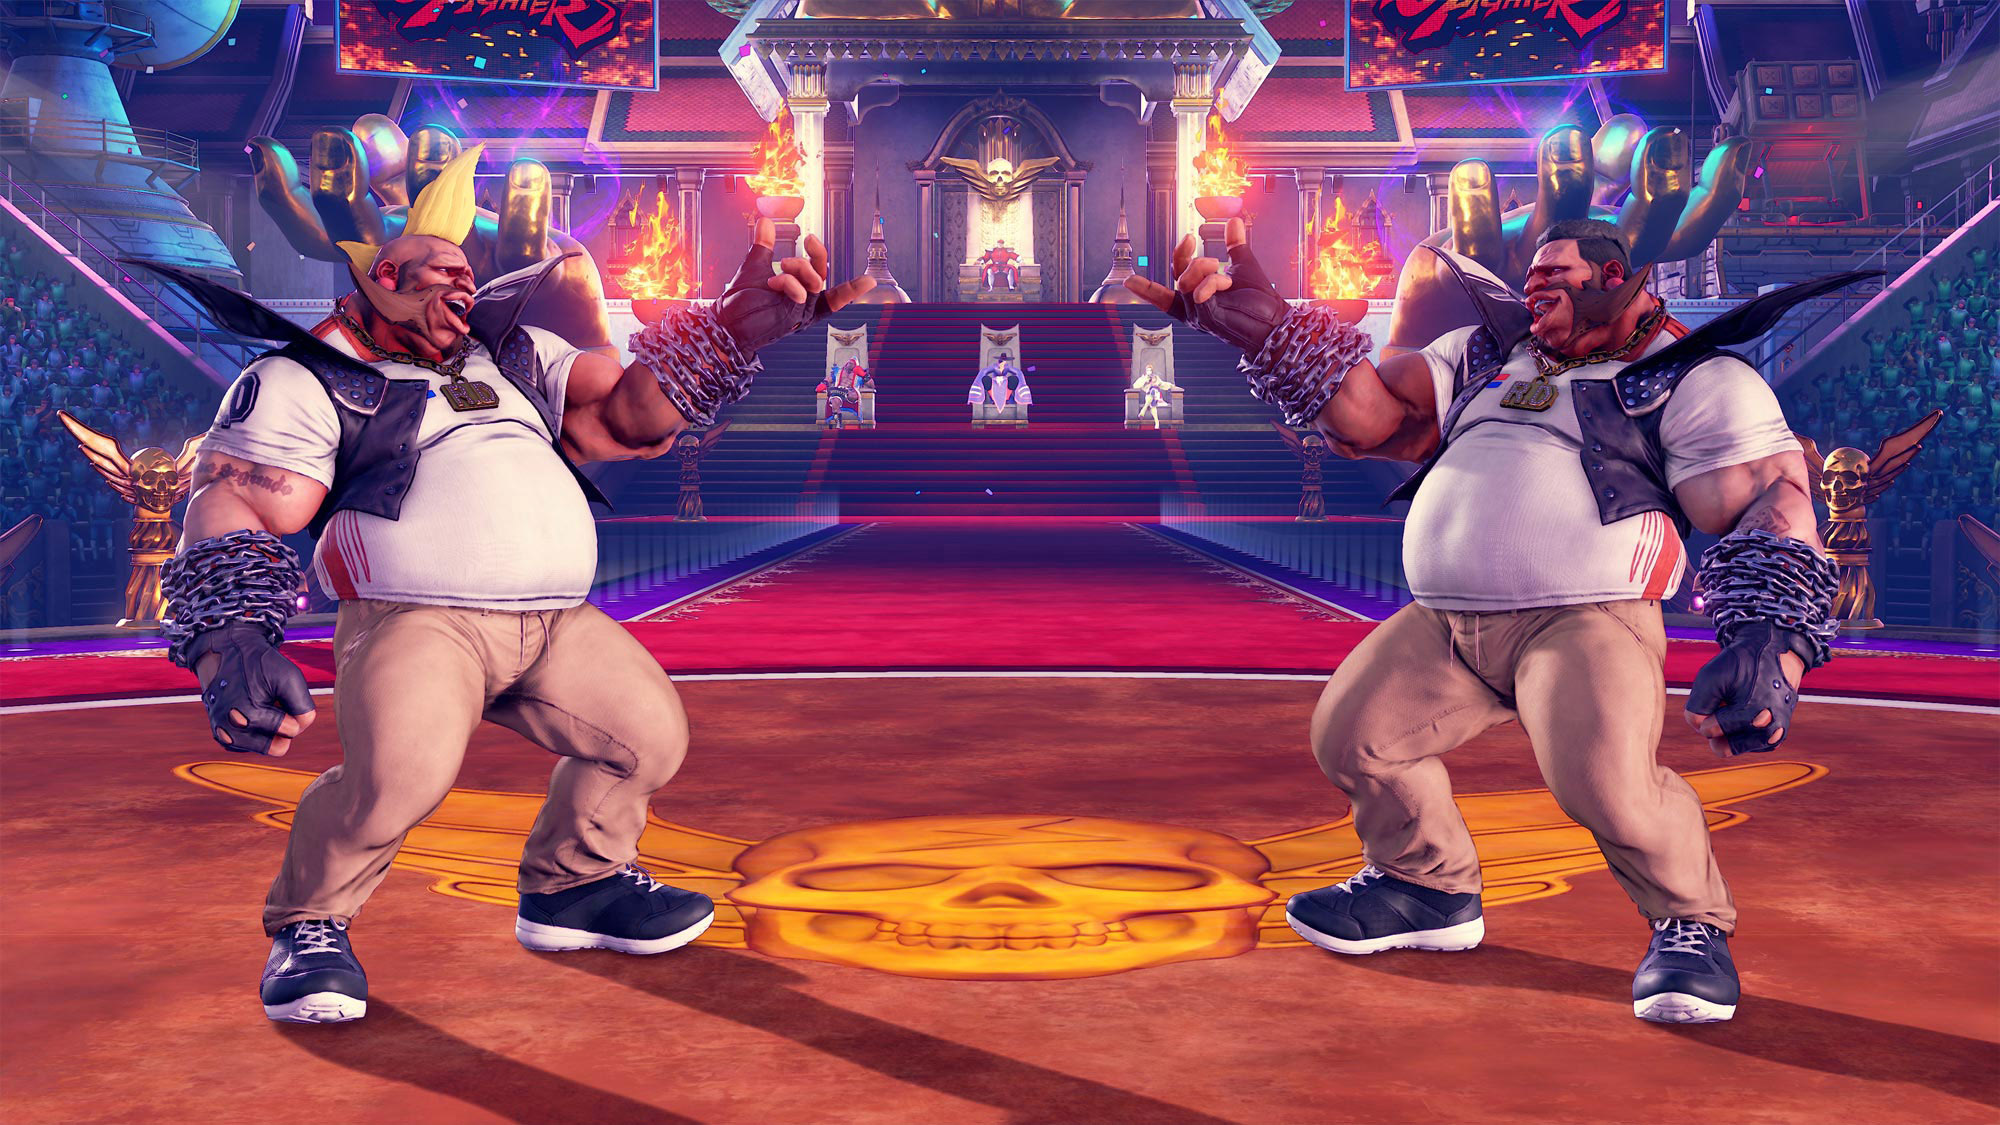 CPT Costumes 9 out of 17 image gallery